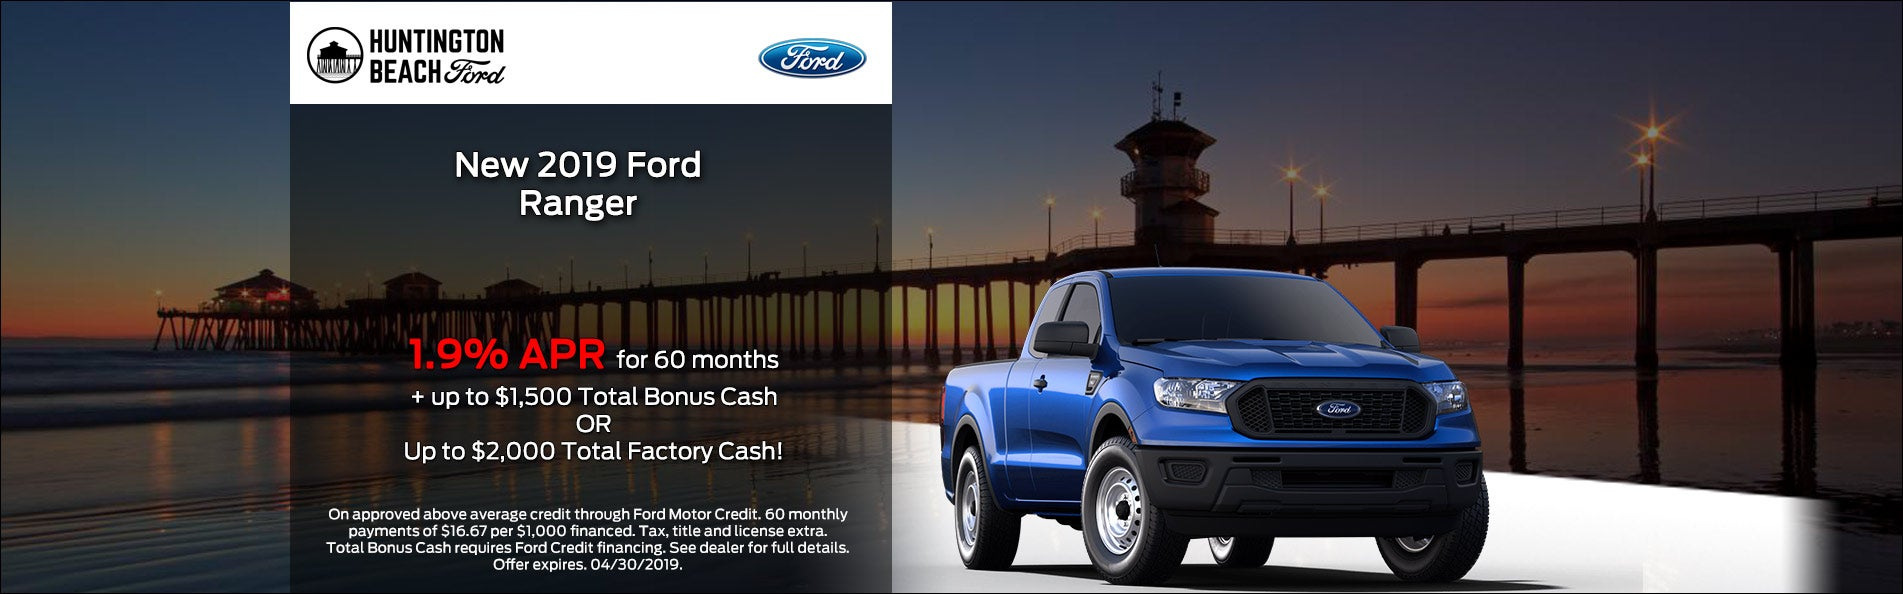 2019 Ford Ranger 1 9 Apr